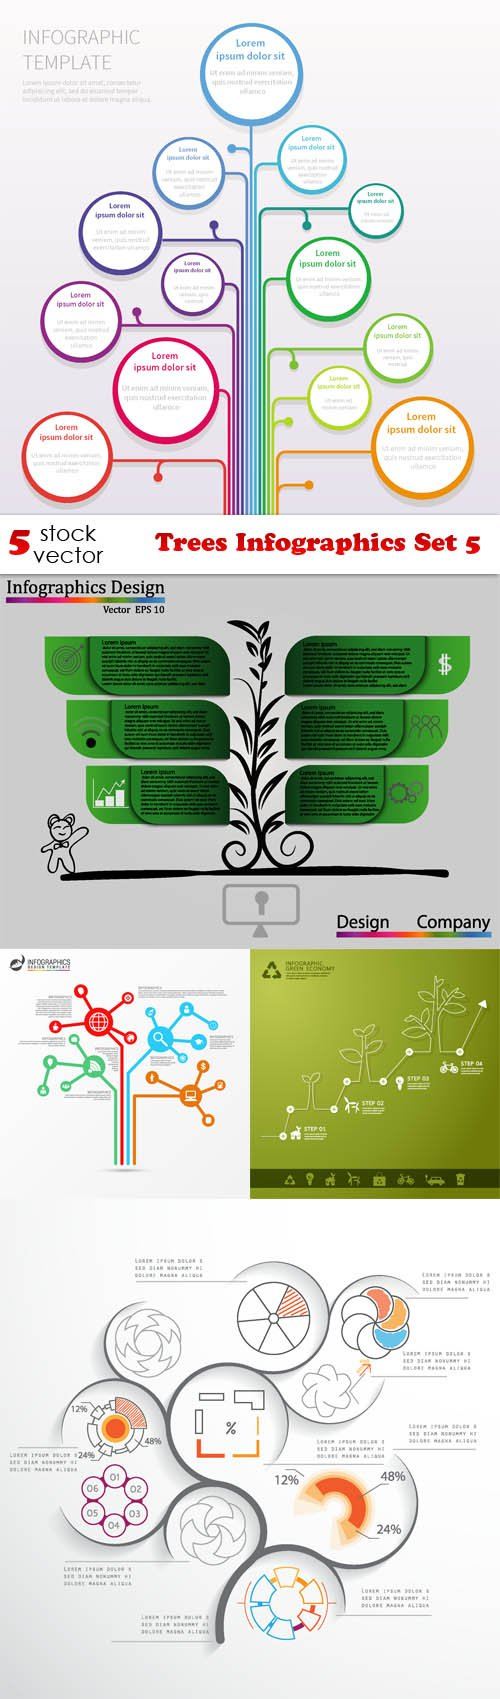 Vectors - Trees Infographics Set 5